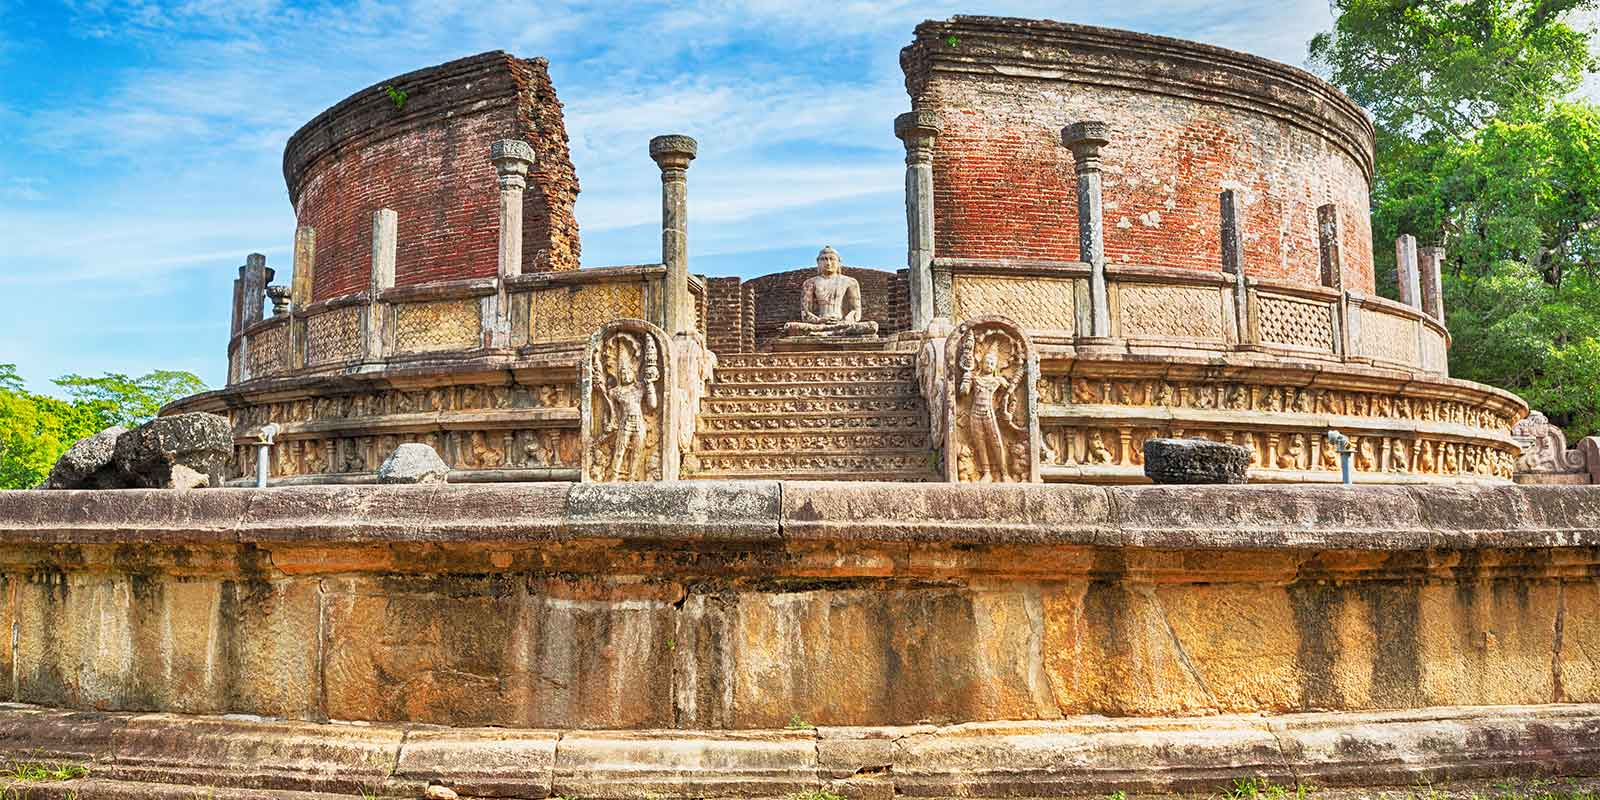 The Round House temple at Polonnaruwa